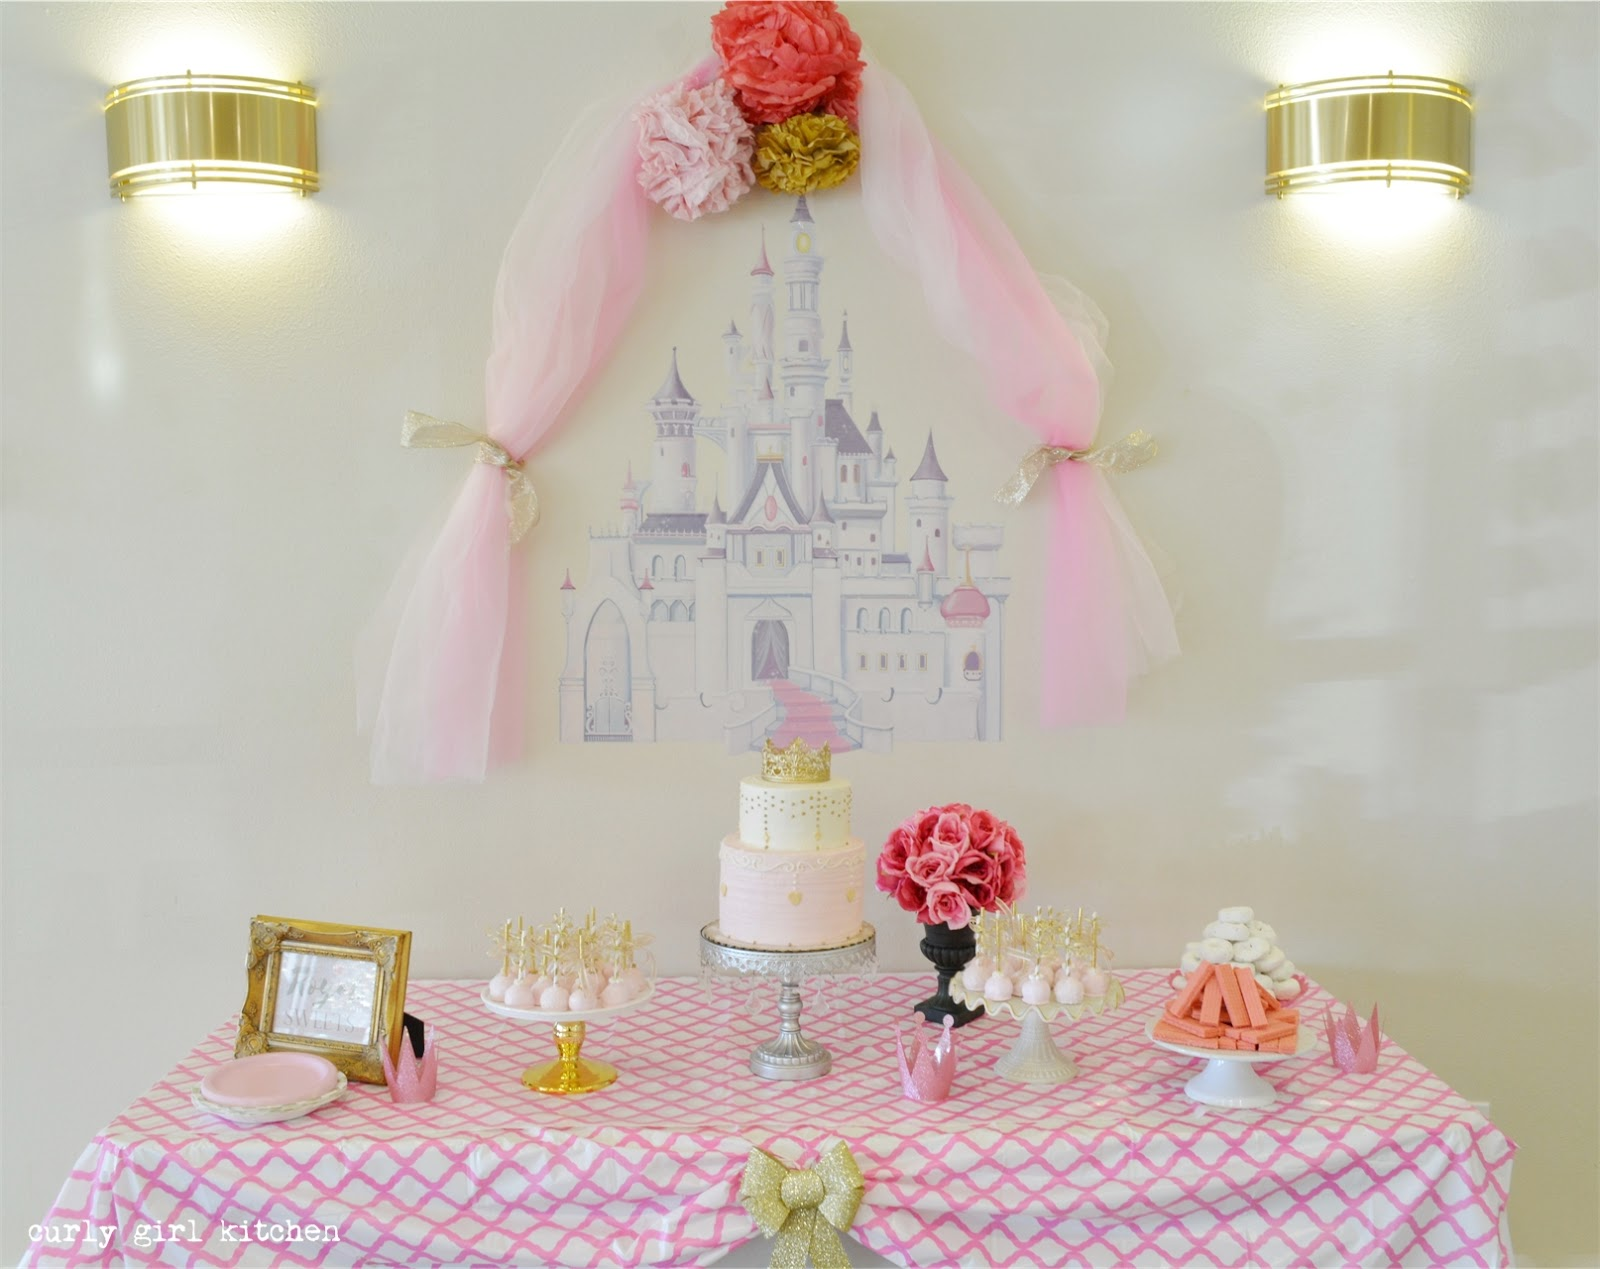 Curly Girl Kitchen: Pink and Gold Princess Party Cake